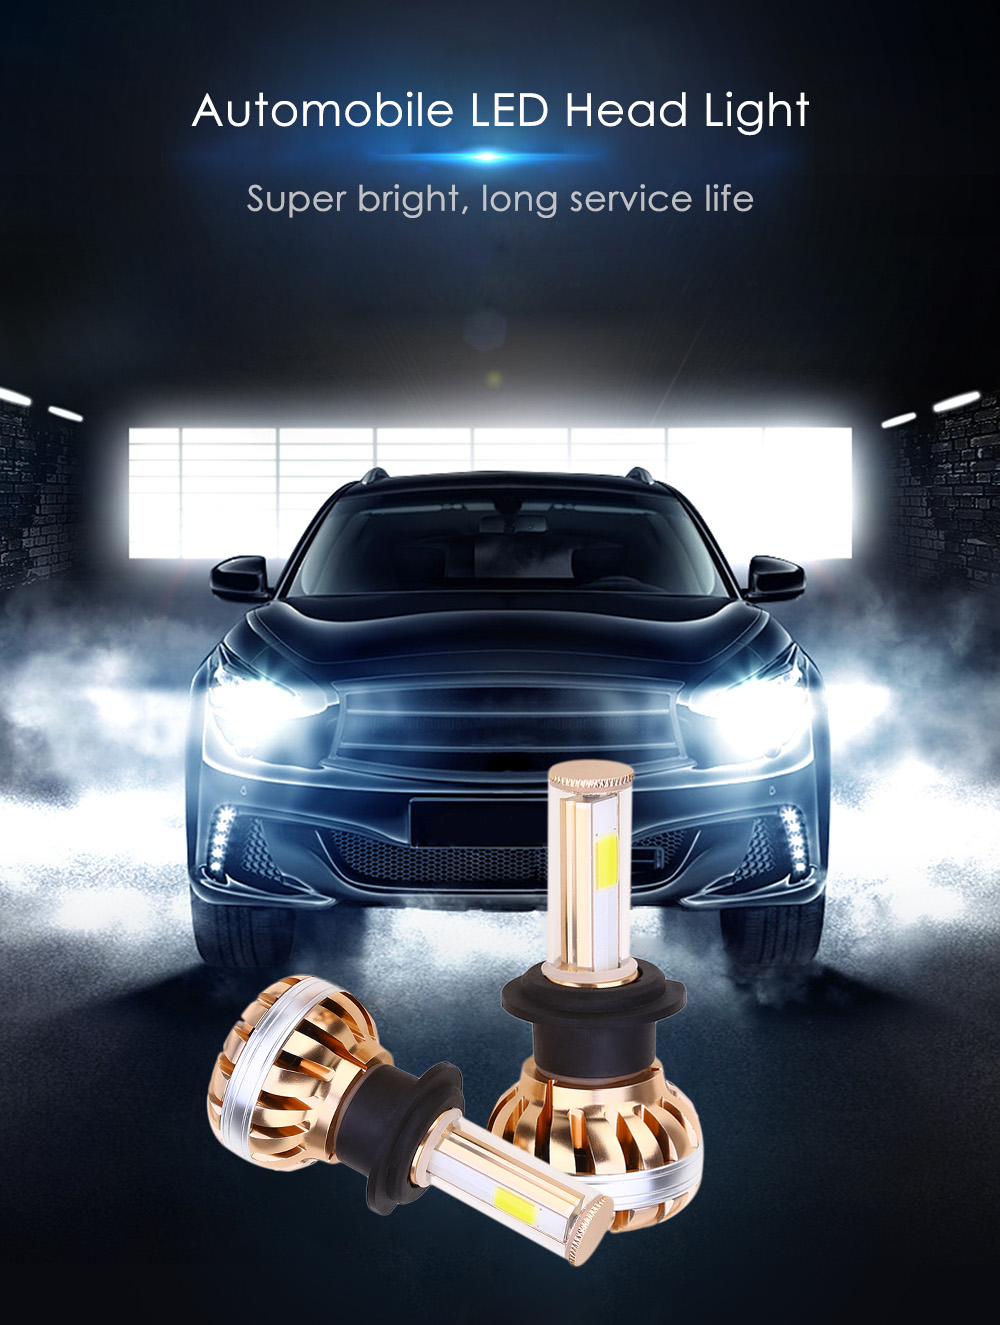 Paired C8 H7 60W LED Automobile Headlight Vibration Resistance